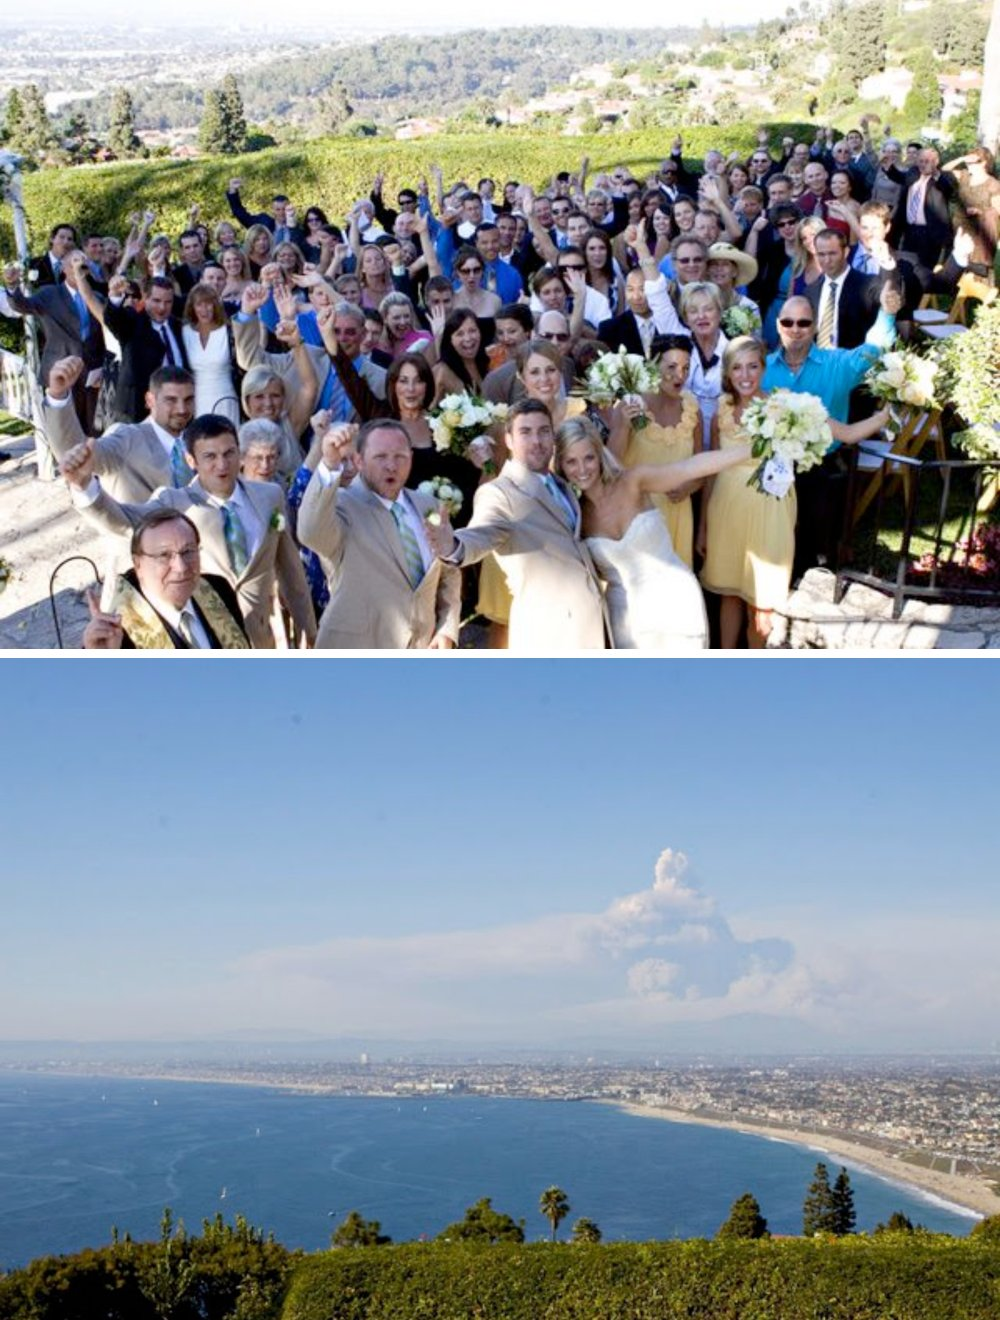 Los-angeles-wedding-on-beach.full